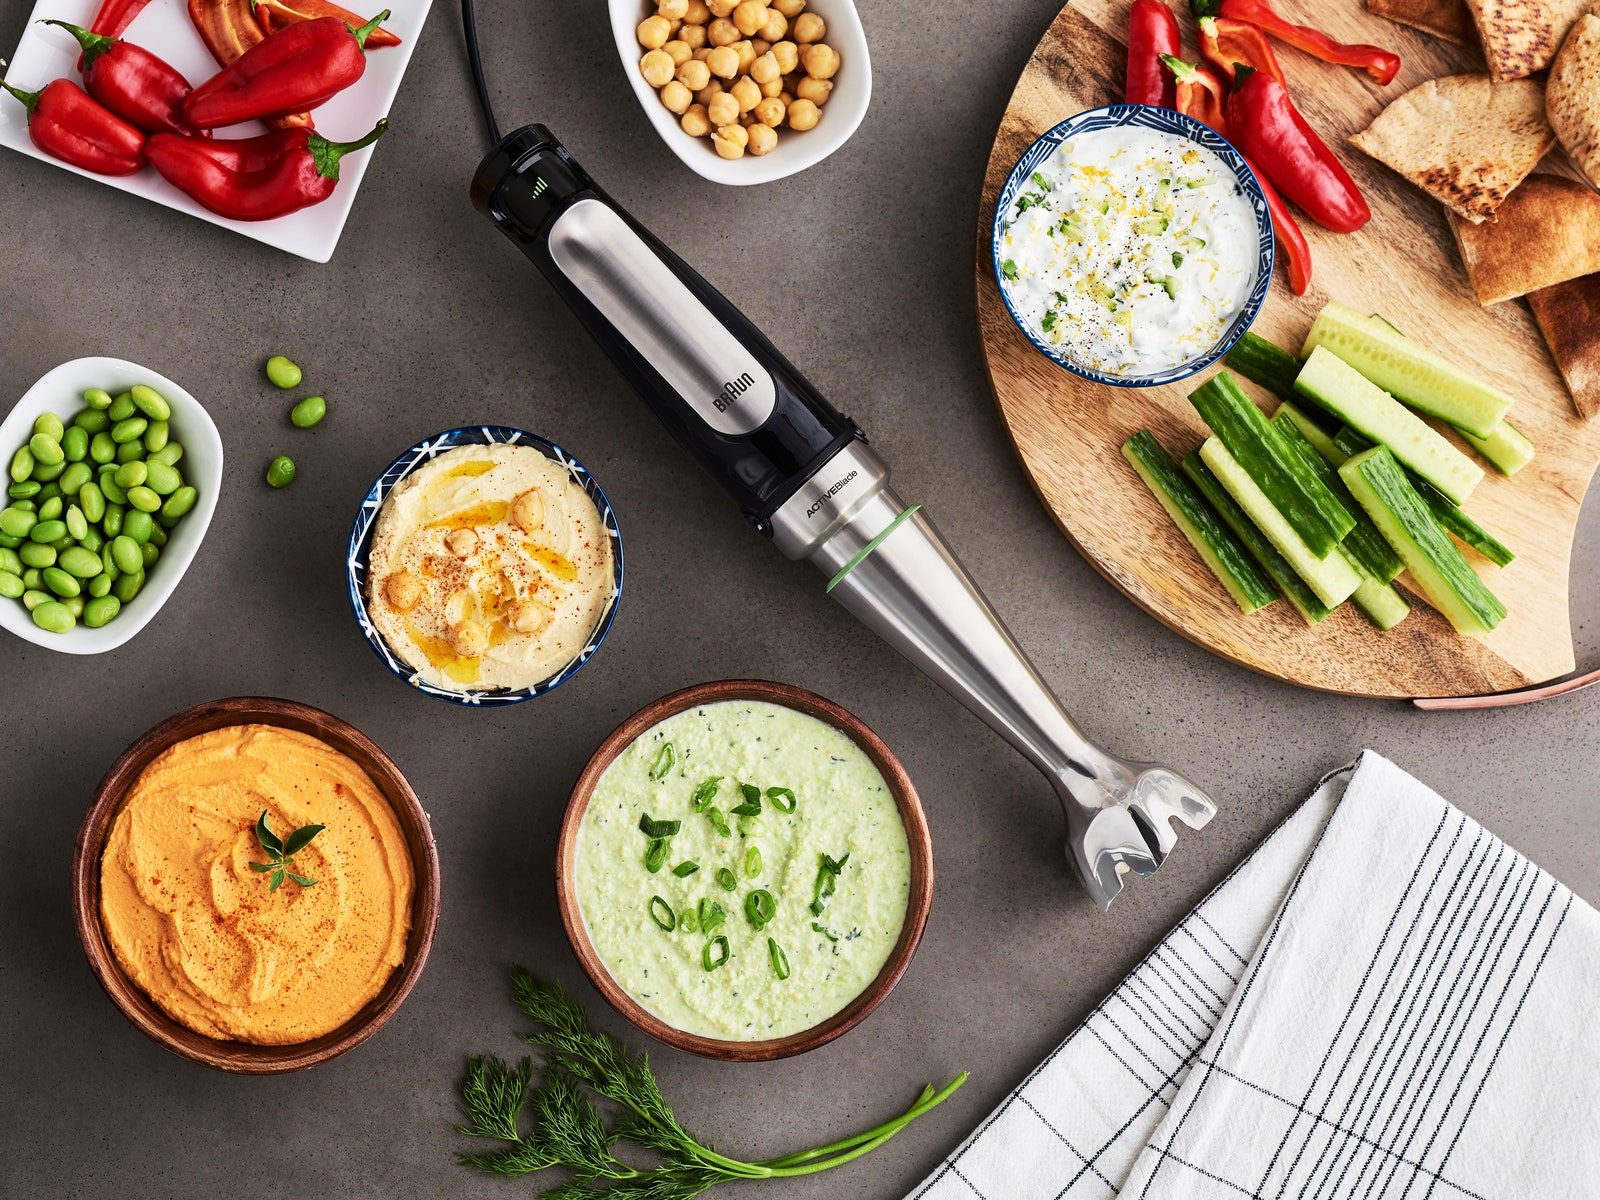 Braun MQ7 MultiQuick Hand Blender Review: Slays Every Sauce and Soup